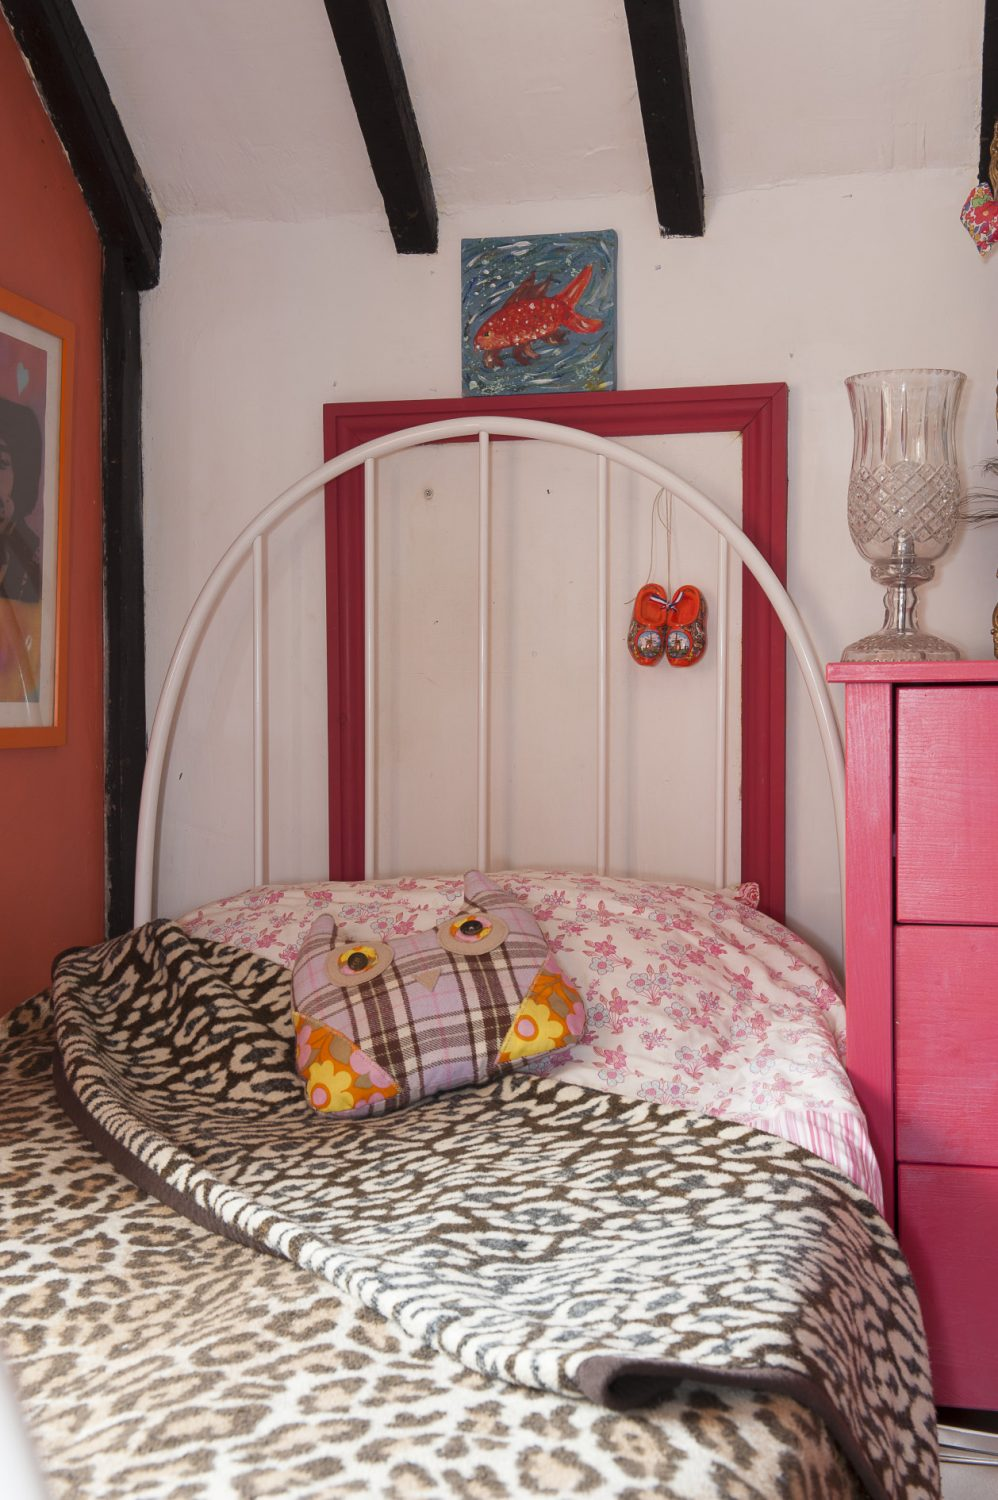 The shared bedroom features leopard-skin bed covers, a great shocking pink and blue chests of drawers, pink and white standard lamp and a wonderful dining chair that Oeda has painted pink and upholstered in a pale green and pink rose fabric